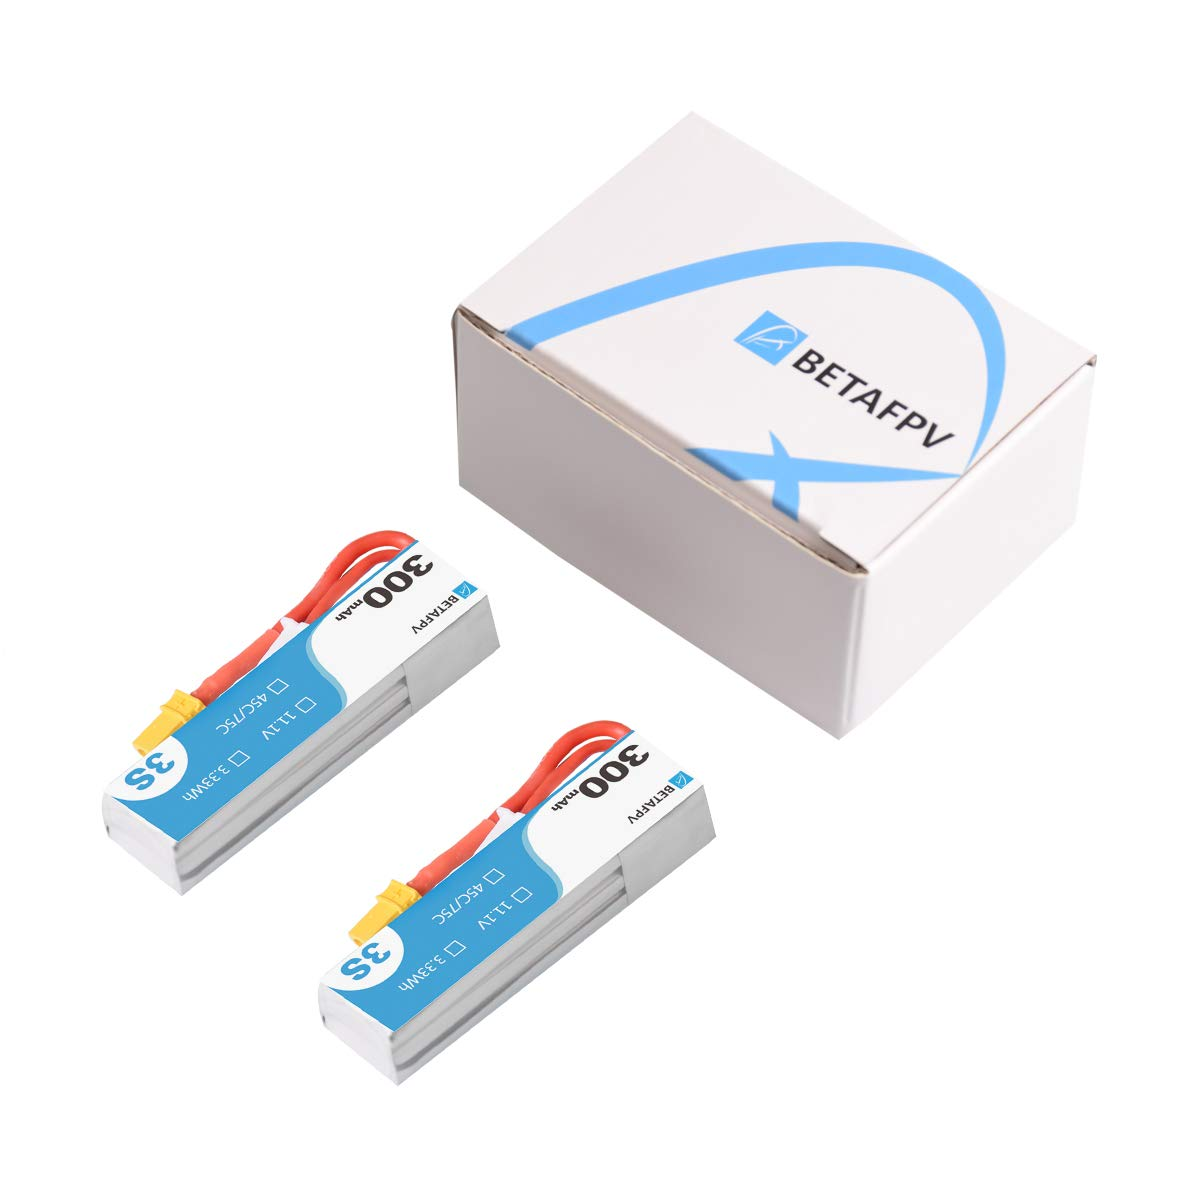 BETAFPV 2pcs 300mAh 3S S-Version Lipo Battery 45C//75C 11.1V XT30 18AWG Silicone Wire for Beta75X 3S HX100 Micro Quadcopter Whoop Drone FPV Racing Drone